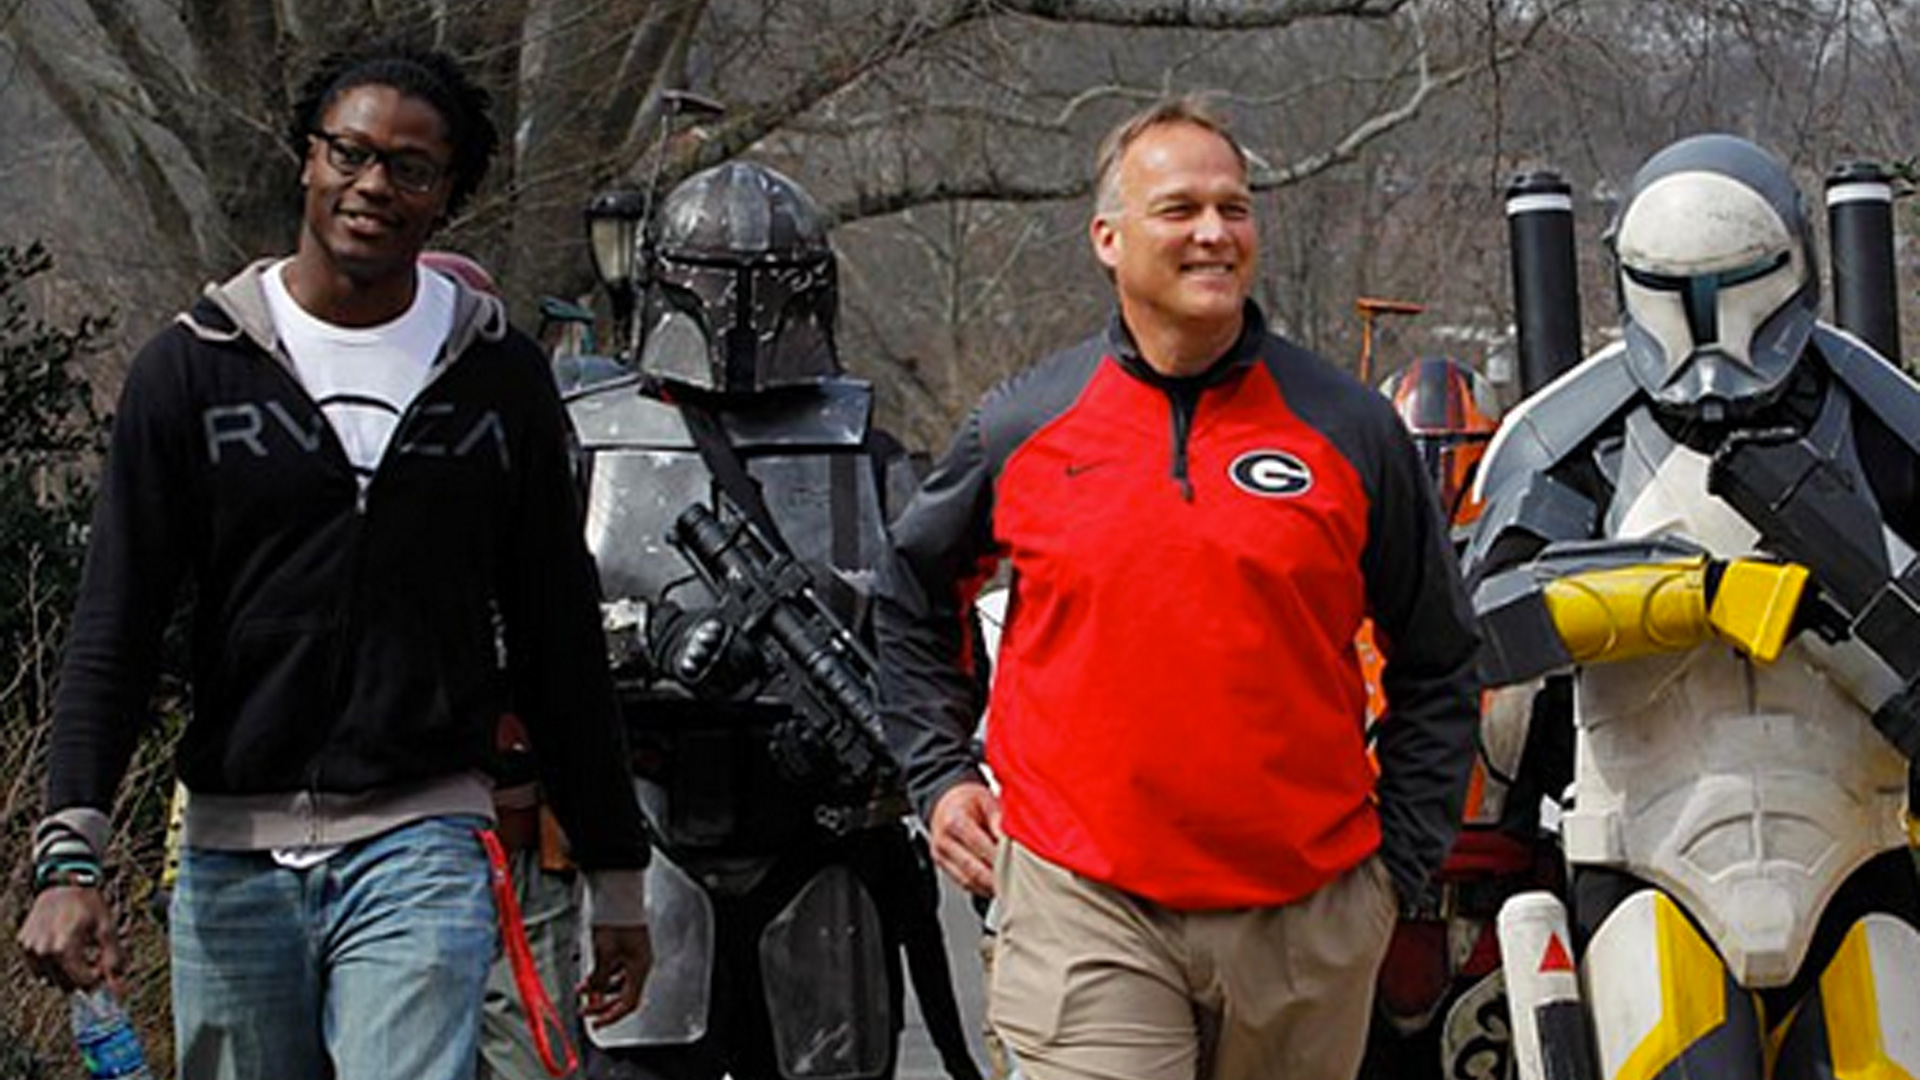 Chris-Conley-Star-Wars-UGA-042814-twitter-ftr